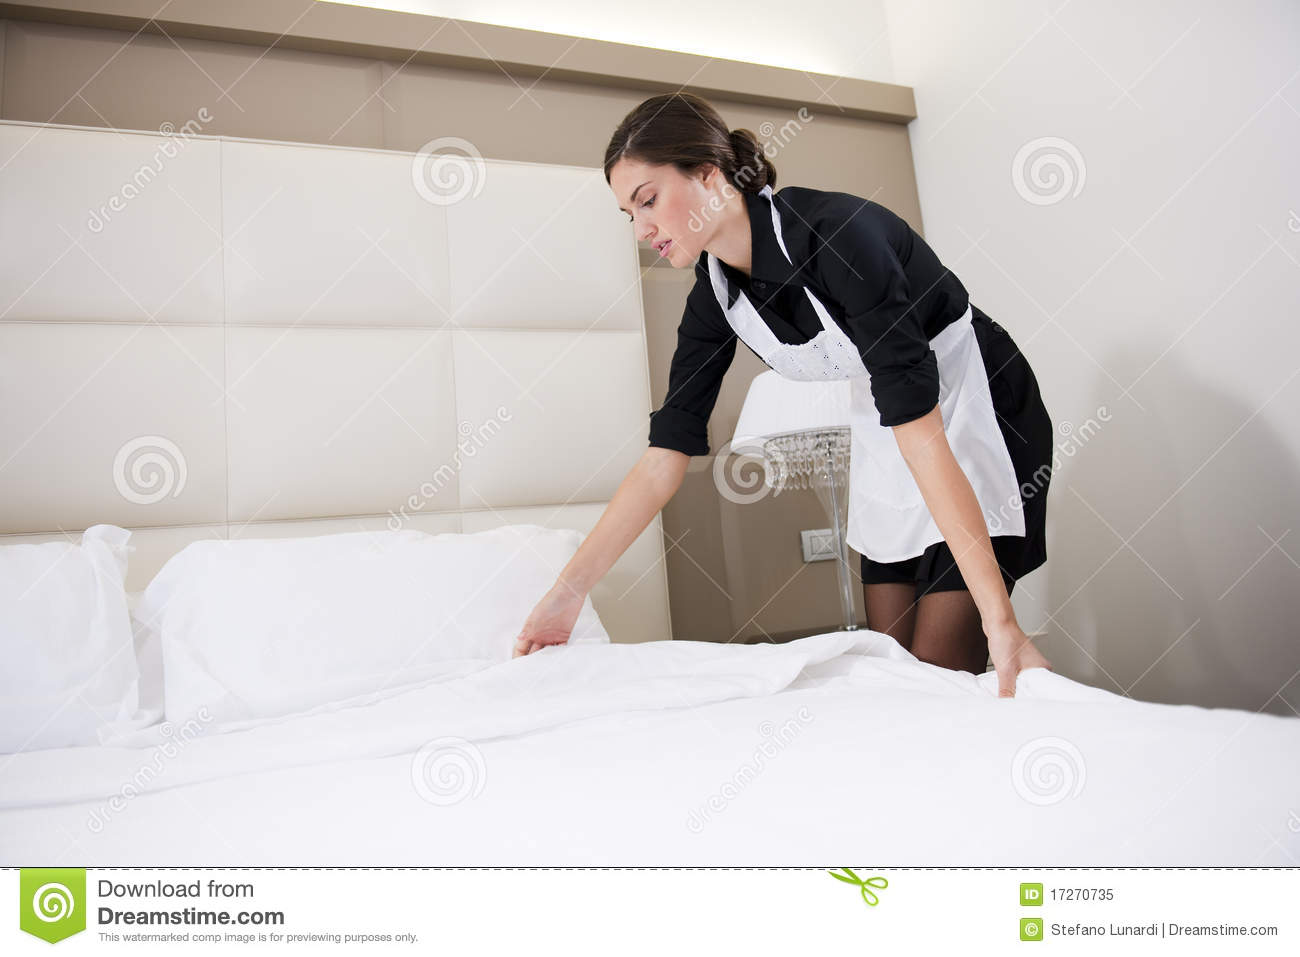 Maid making bed stock image image of bedroom room - Femmes de chambre synonyme ...